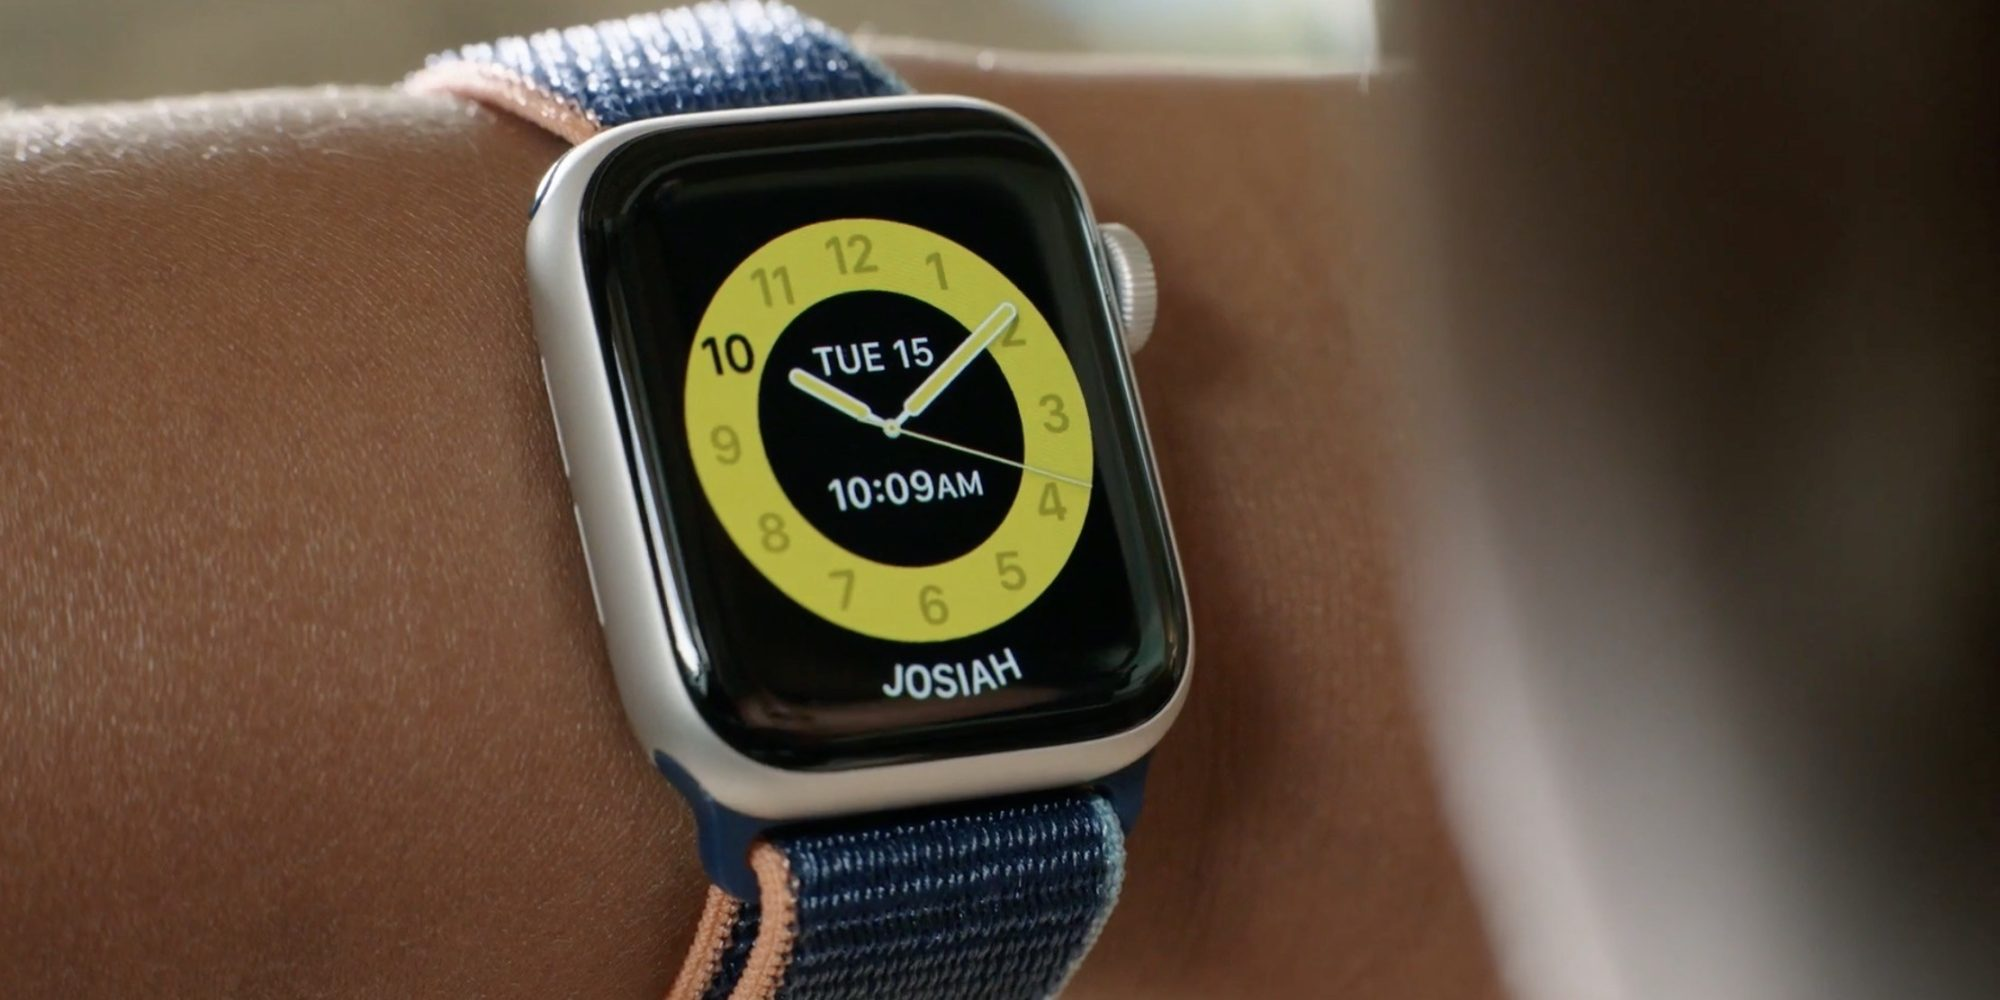 ❤ How to setup Apple Watch Schooltime to help improve focus